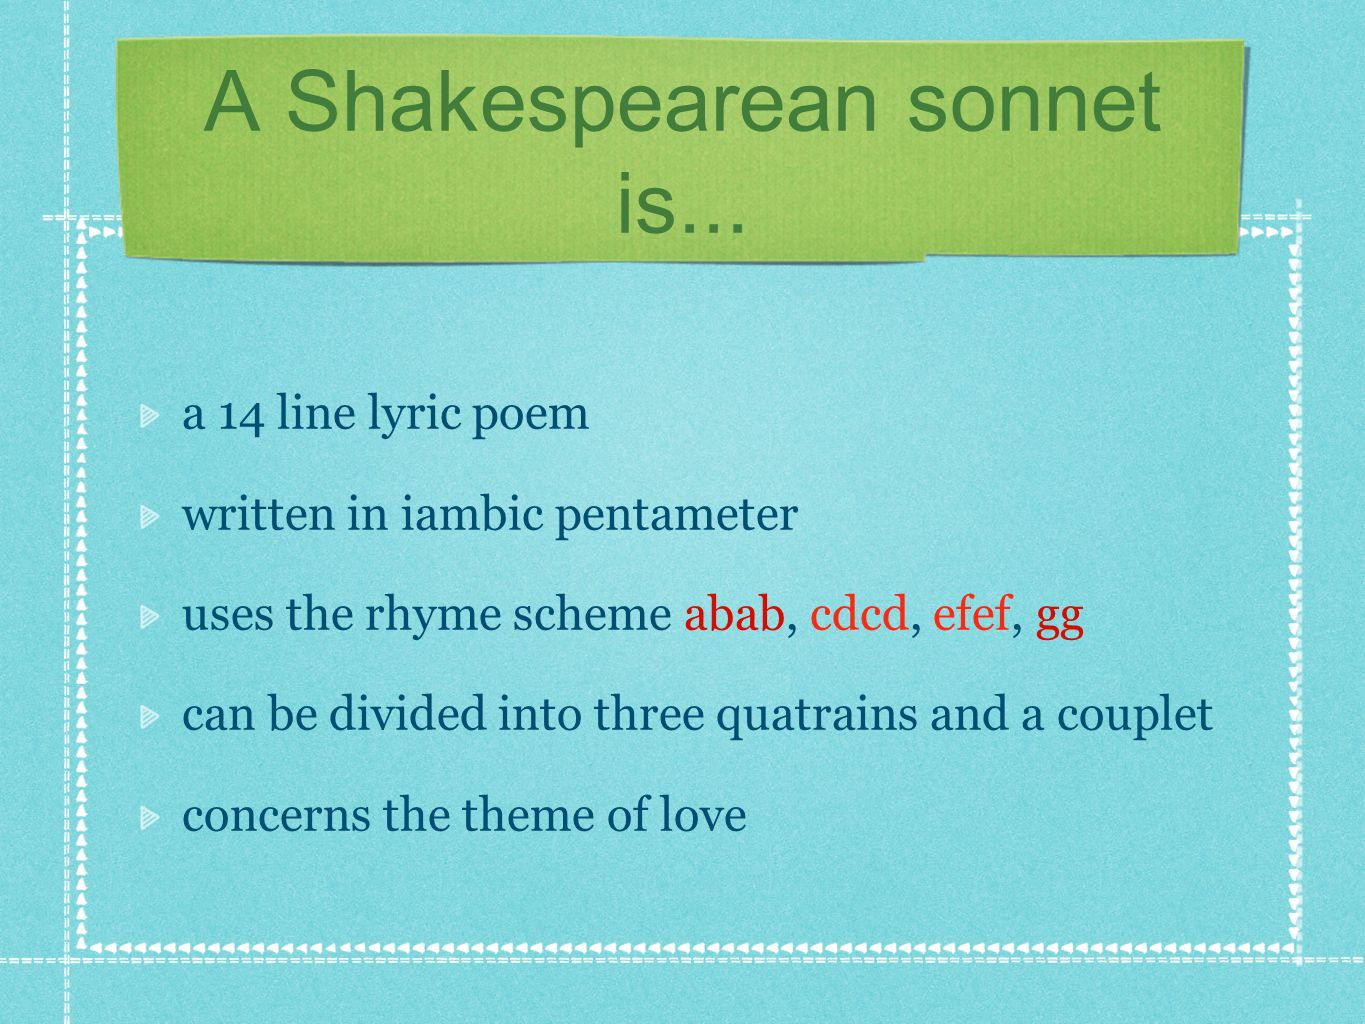 A Shakespearean sonnet is...